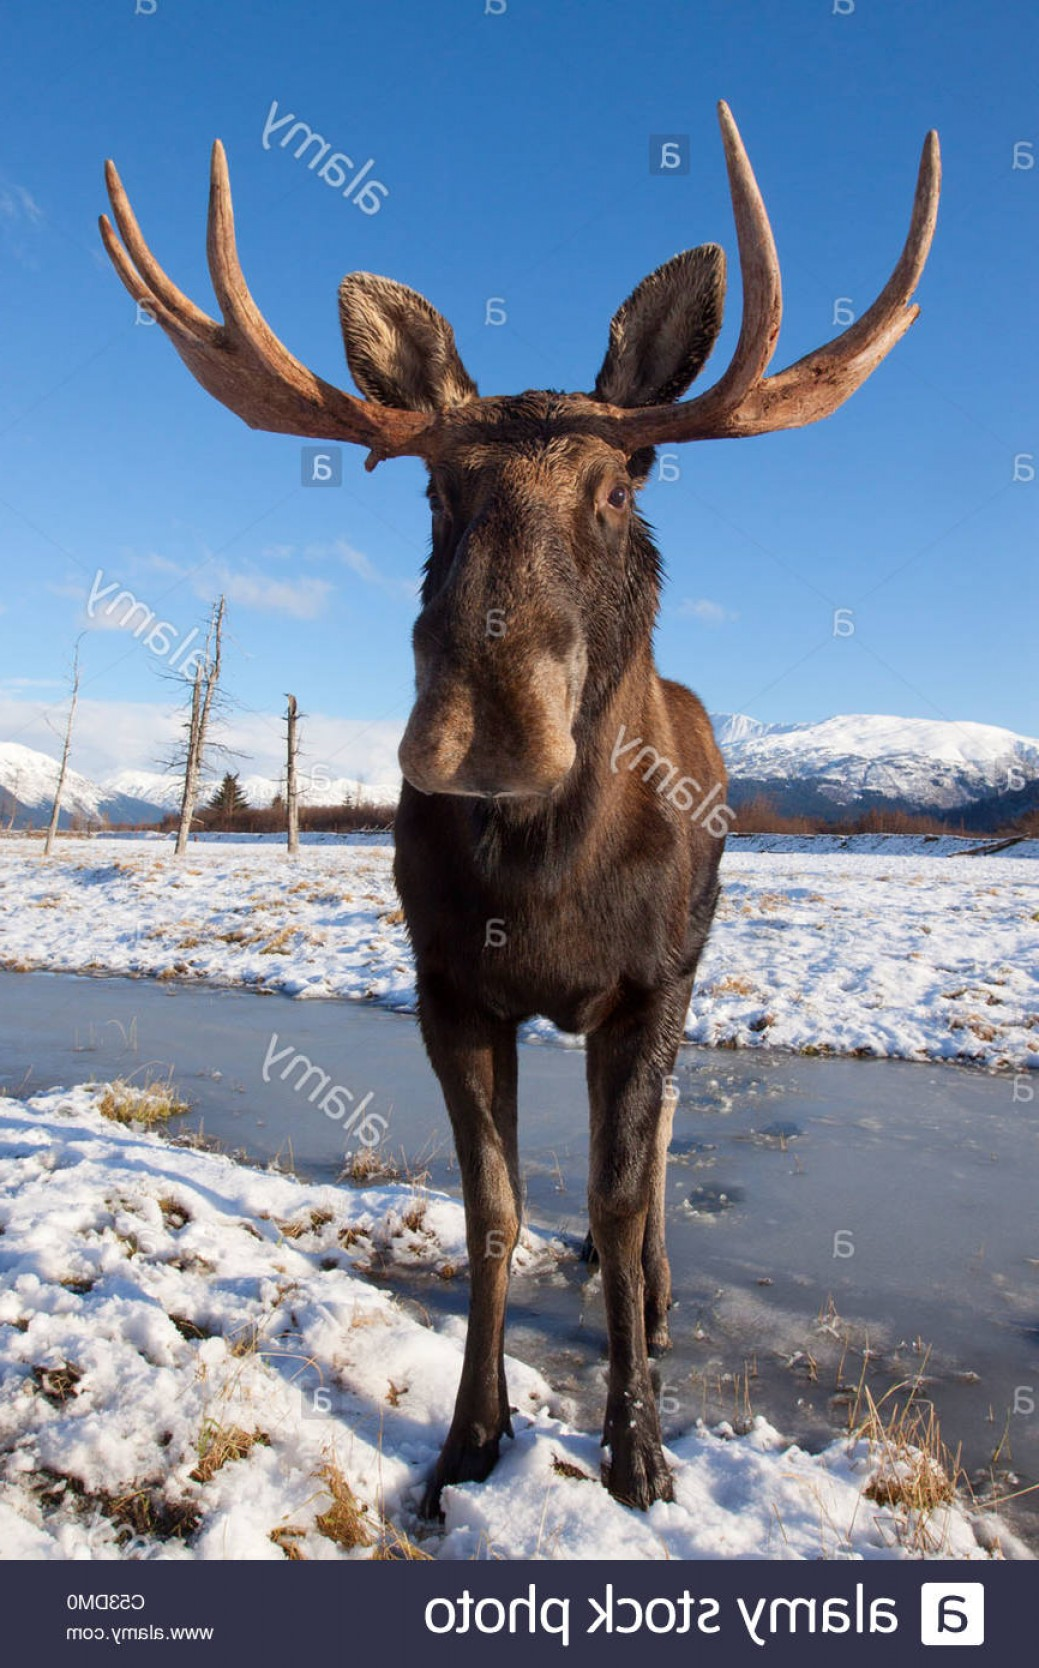 Alaska Moose Vectors: Stock Photo A Wide Angle View Of A Bull Moose Standing On Thin Snow At The Alaska